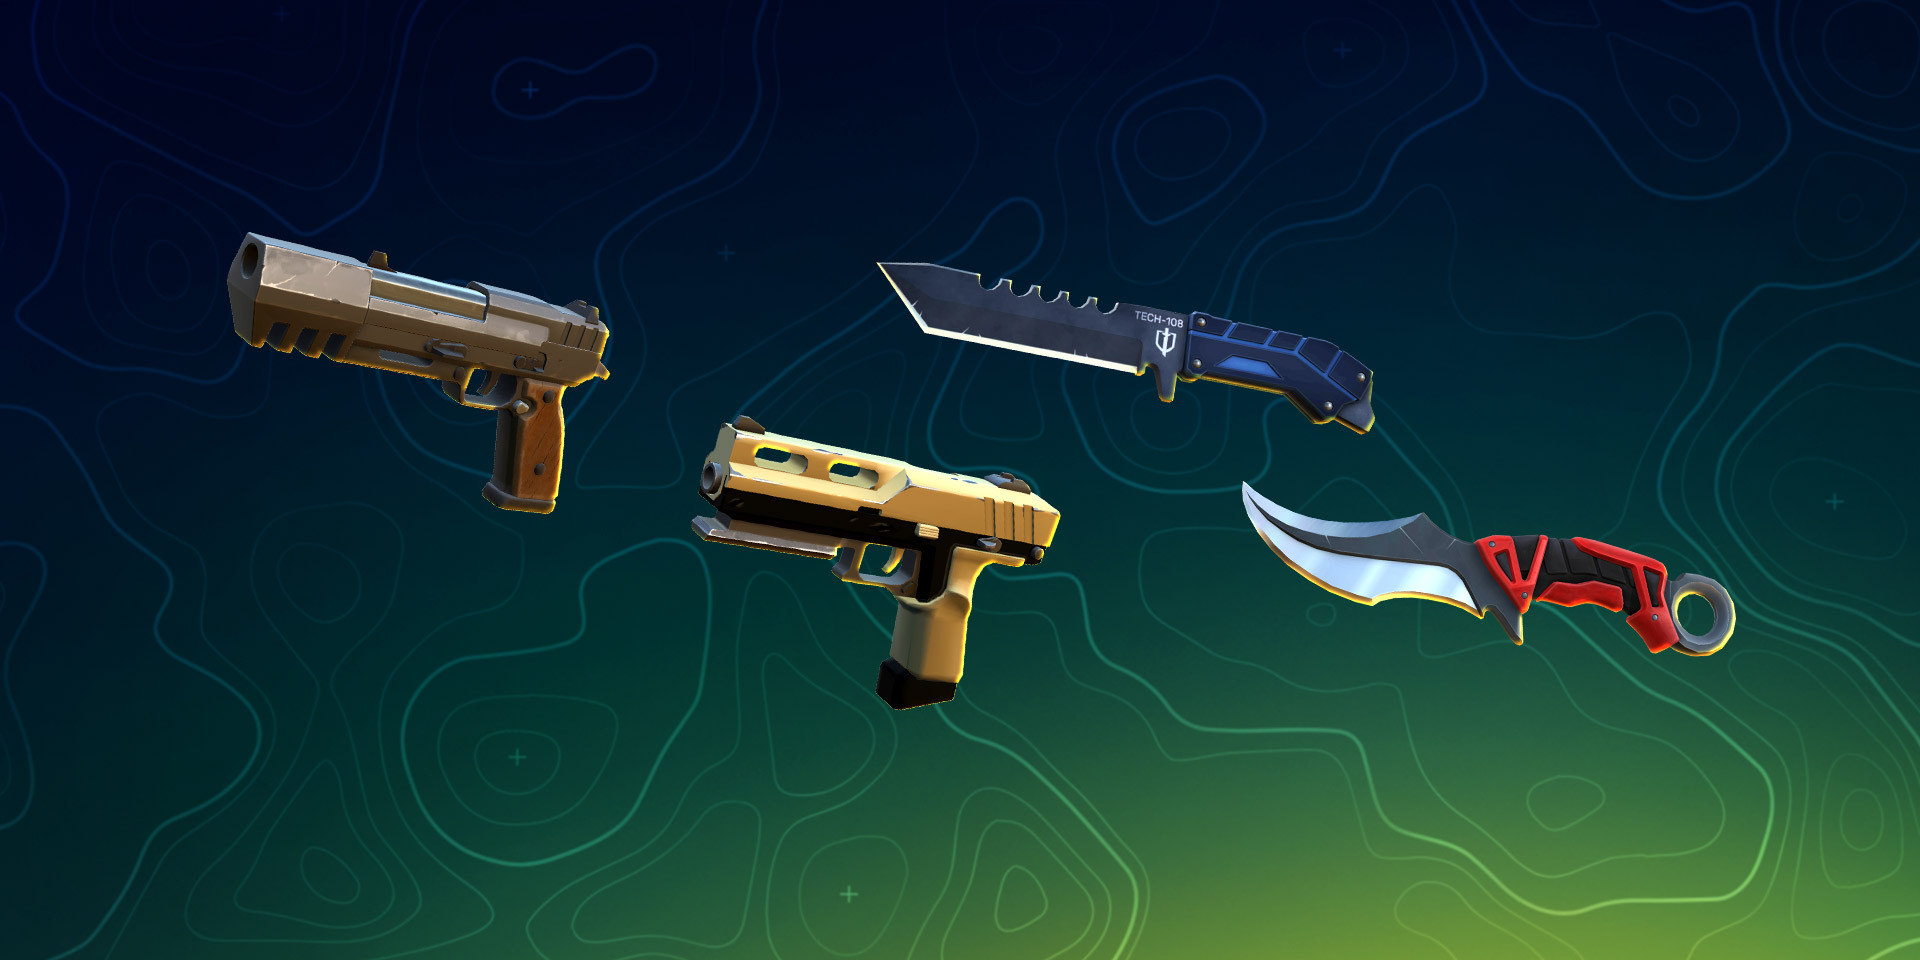 update-131-knives-pistols-and-new-social-features-9neUJy5Pi6